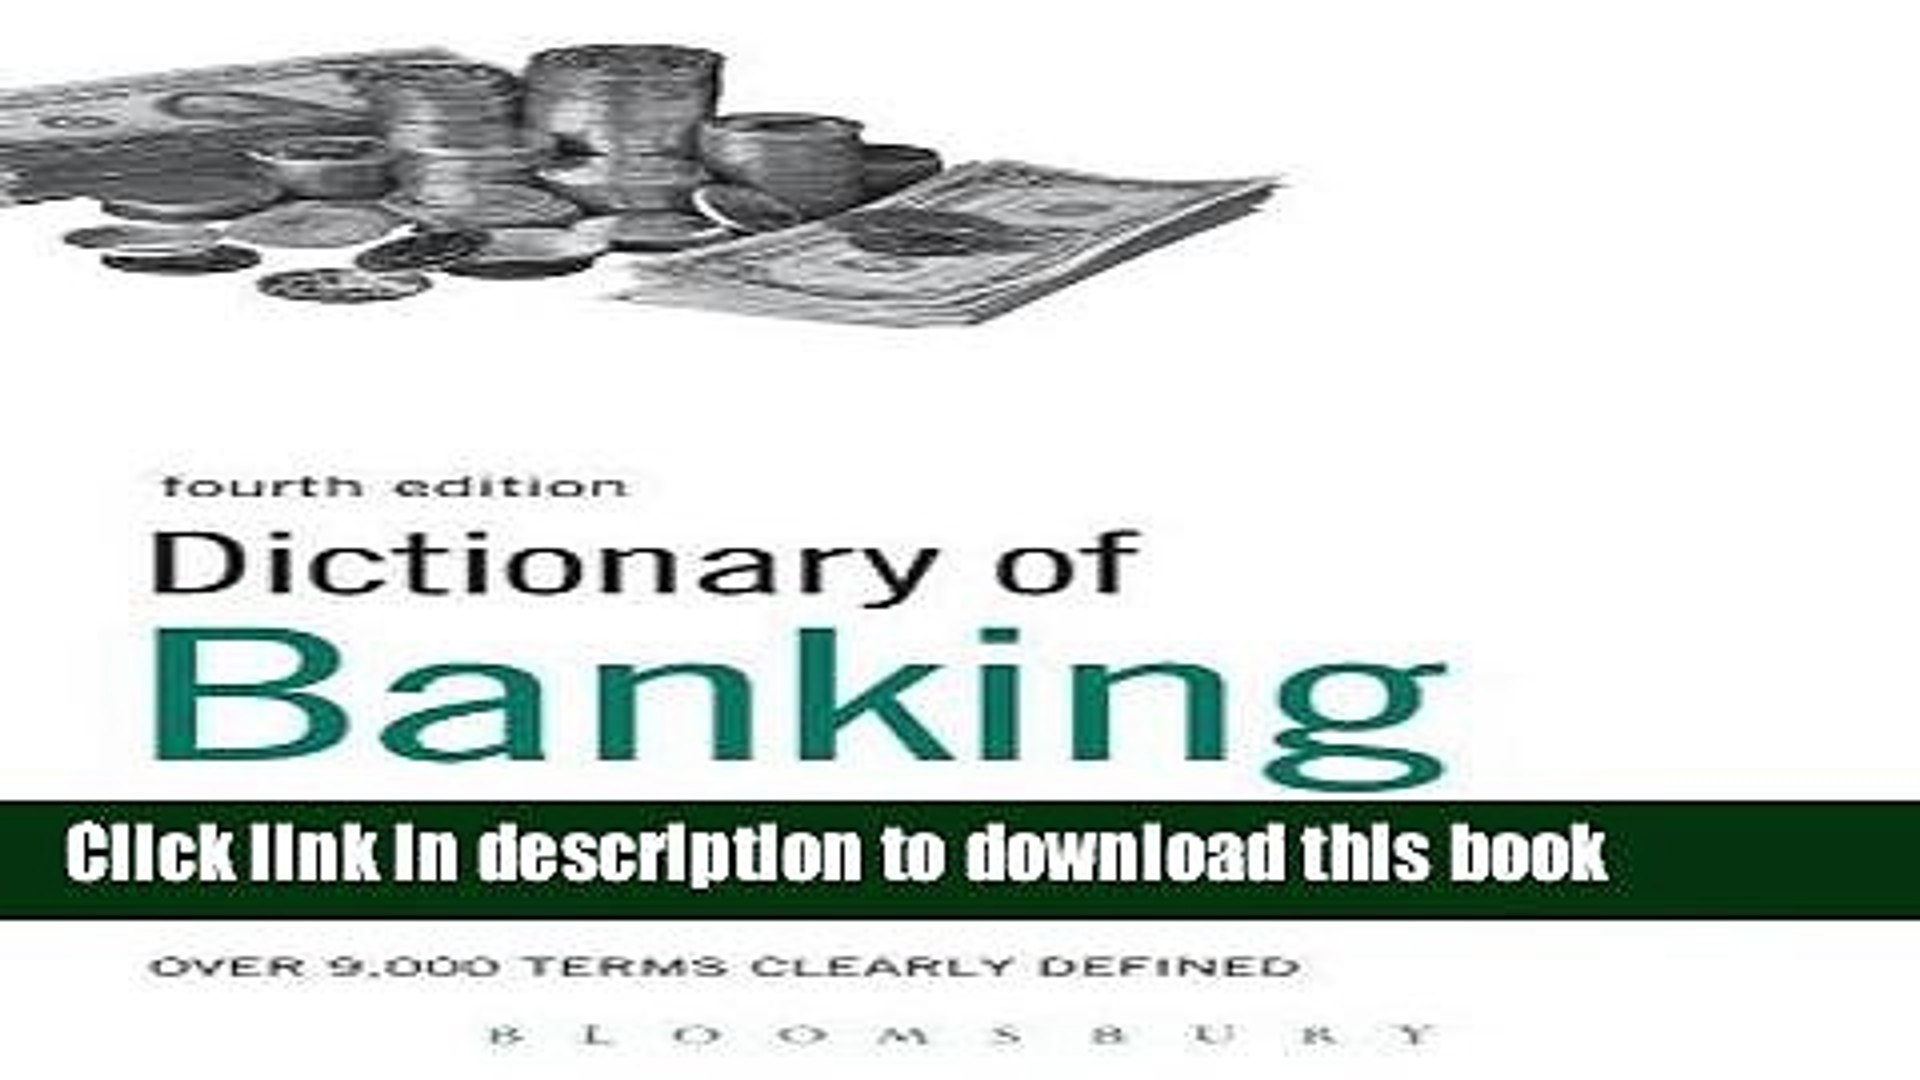 Books Dictionary of Banking and Finance: Over 9,000 terms clearly defined Full Online